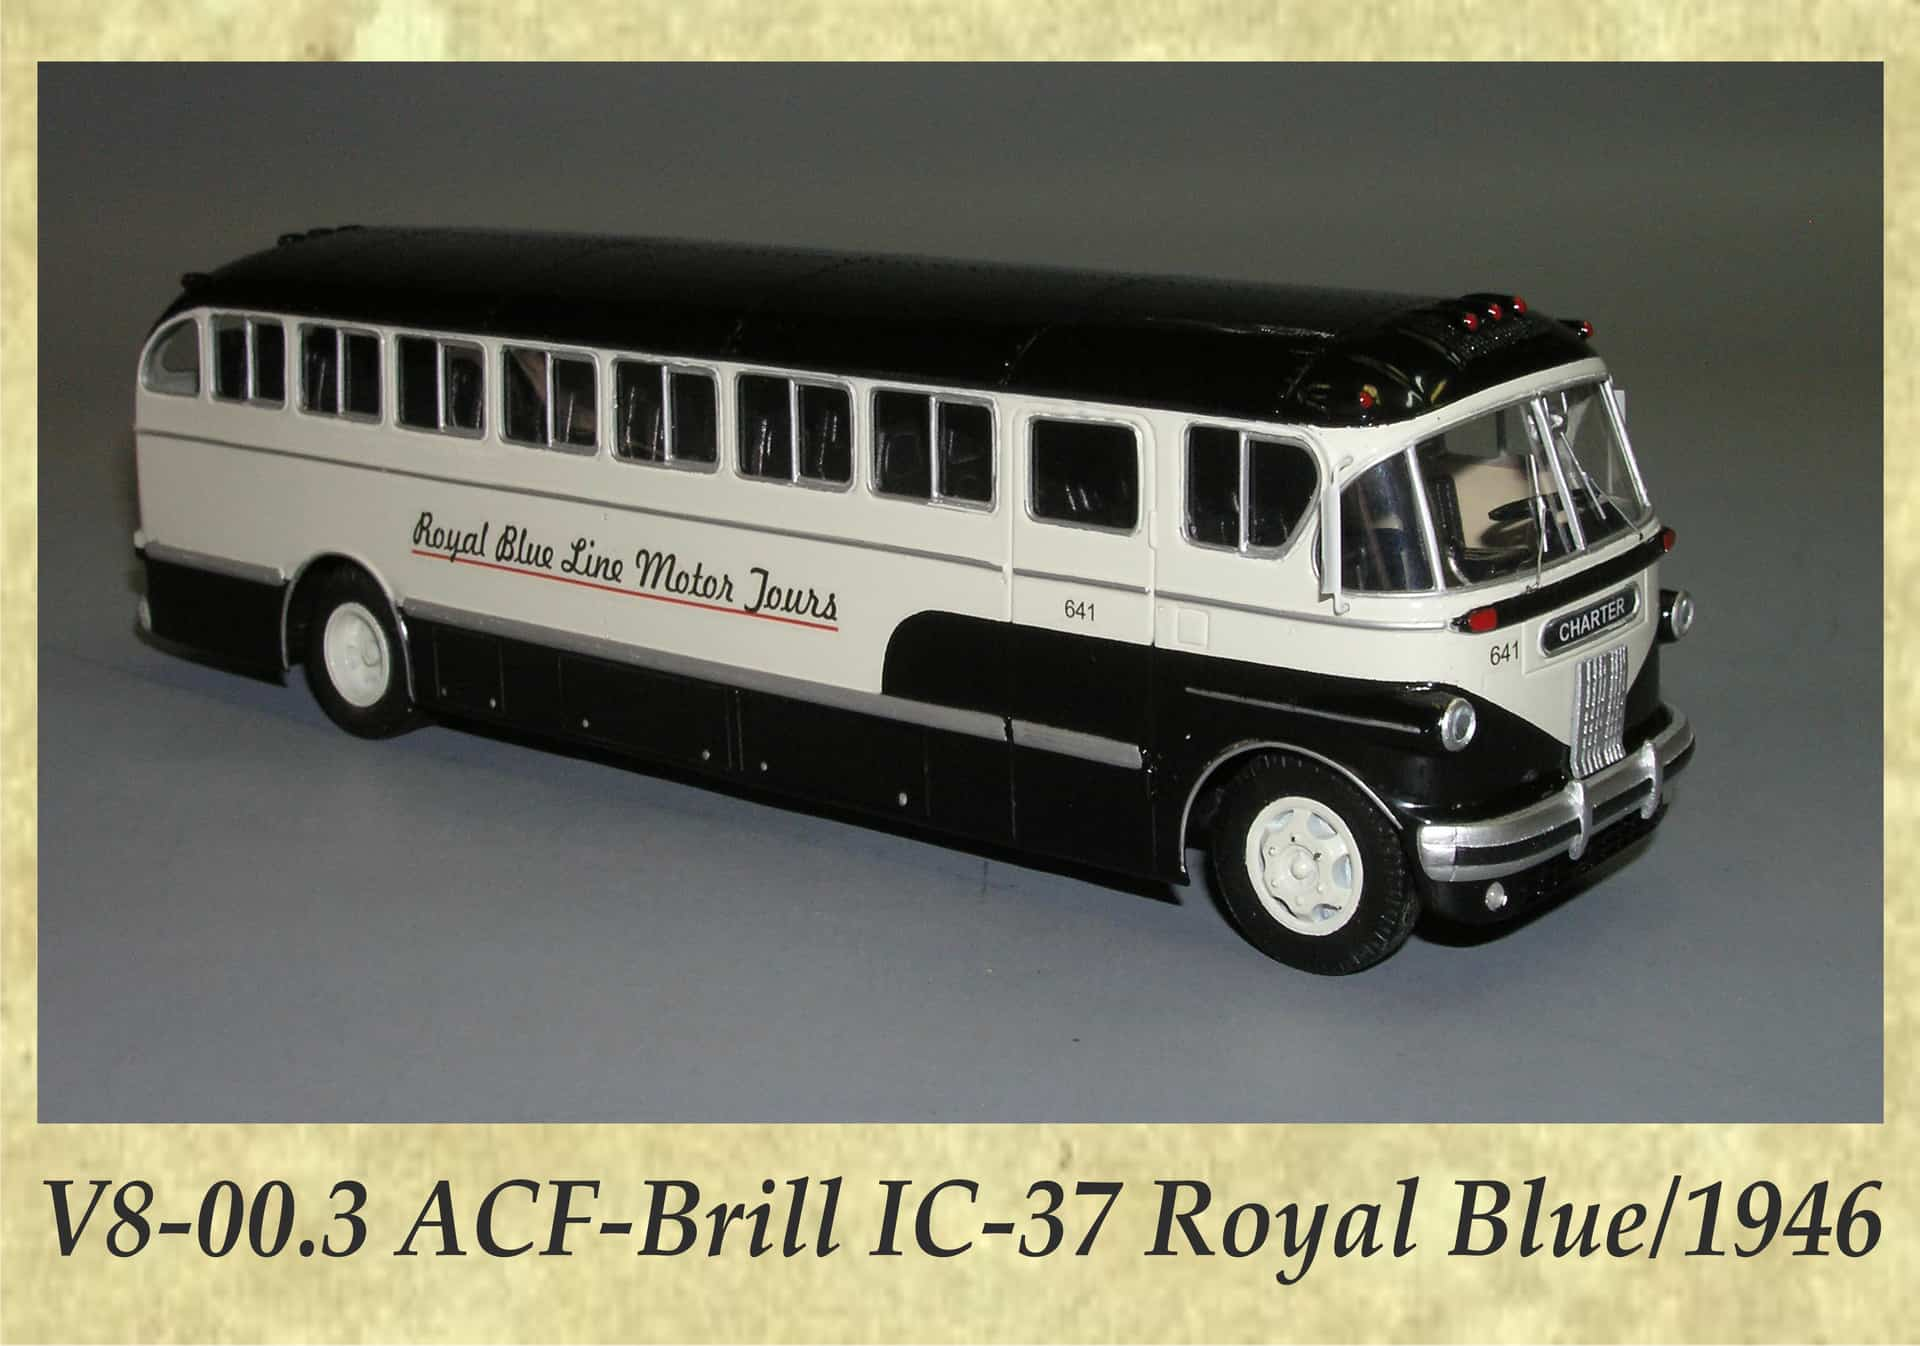 V8-00.3 ACF-Brill IC-37 Royal Blue_1946